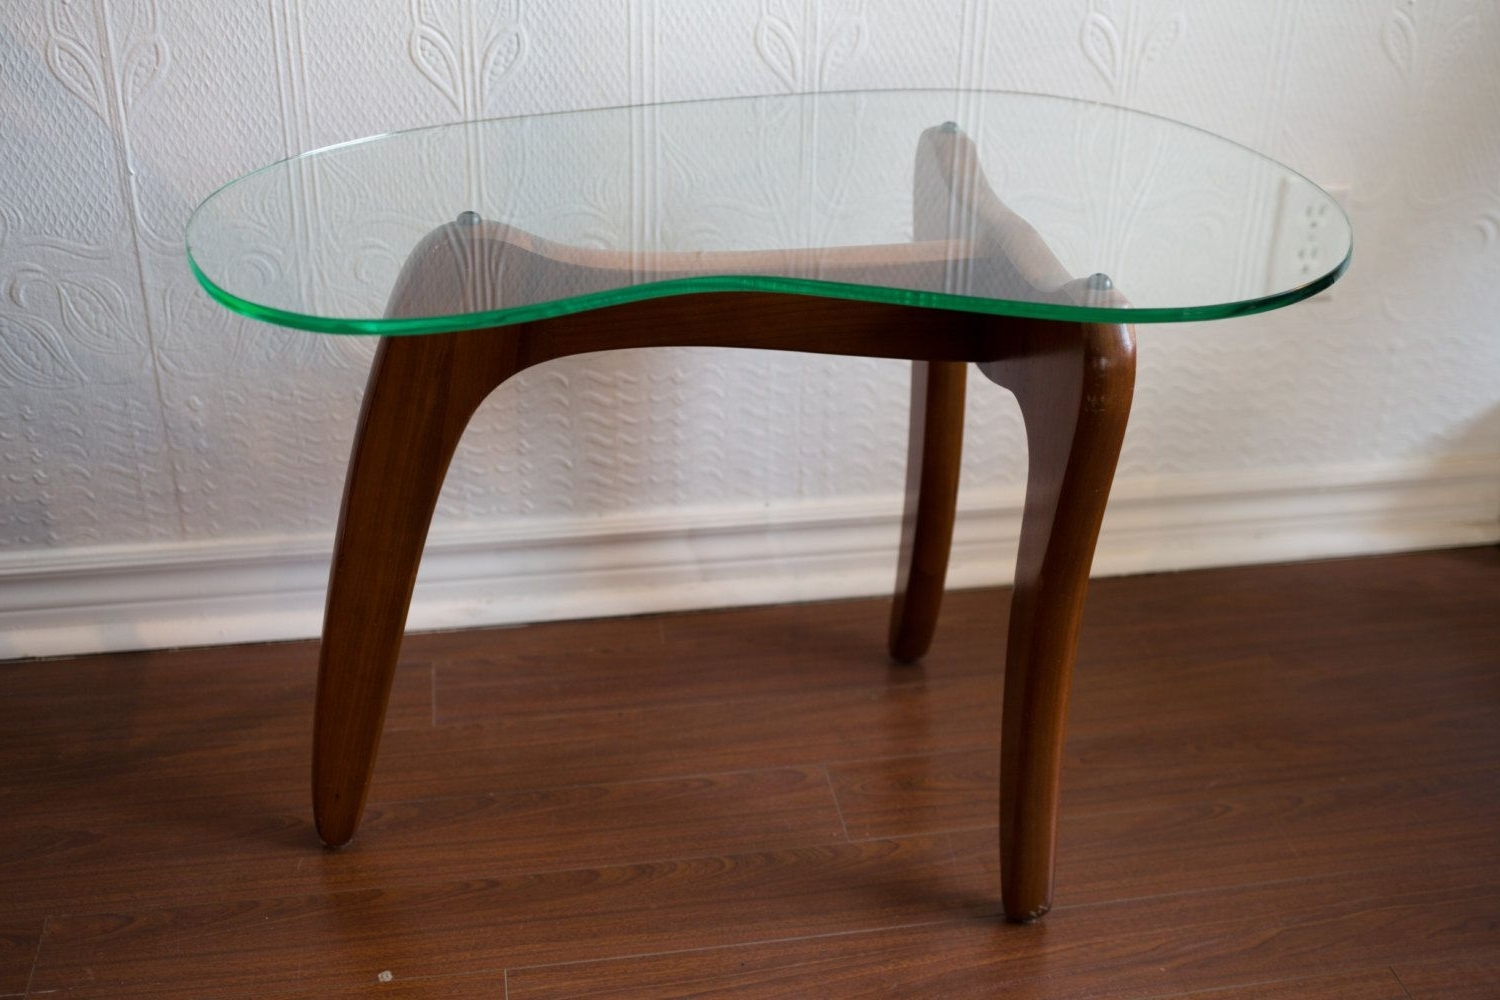 Toronto – Mid Century Modern Small Wood Coffee Table With Kidney With Regard To Widely Used Jelly Bean Coffee Tables (View 17 of 20)